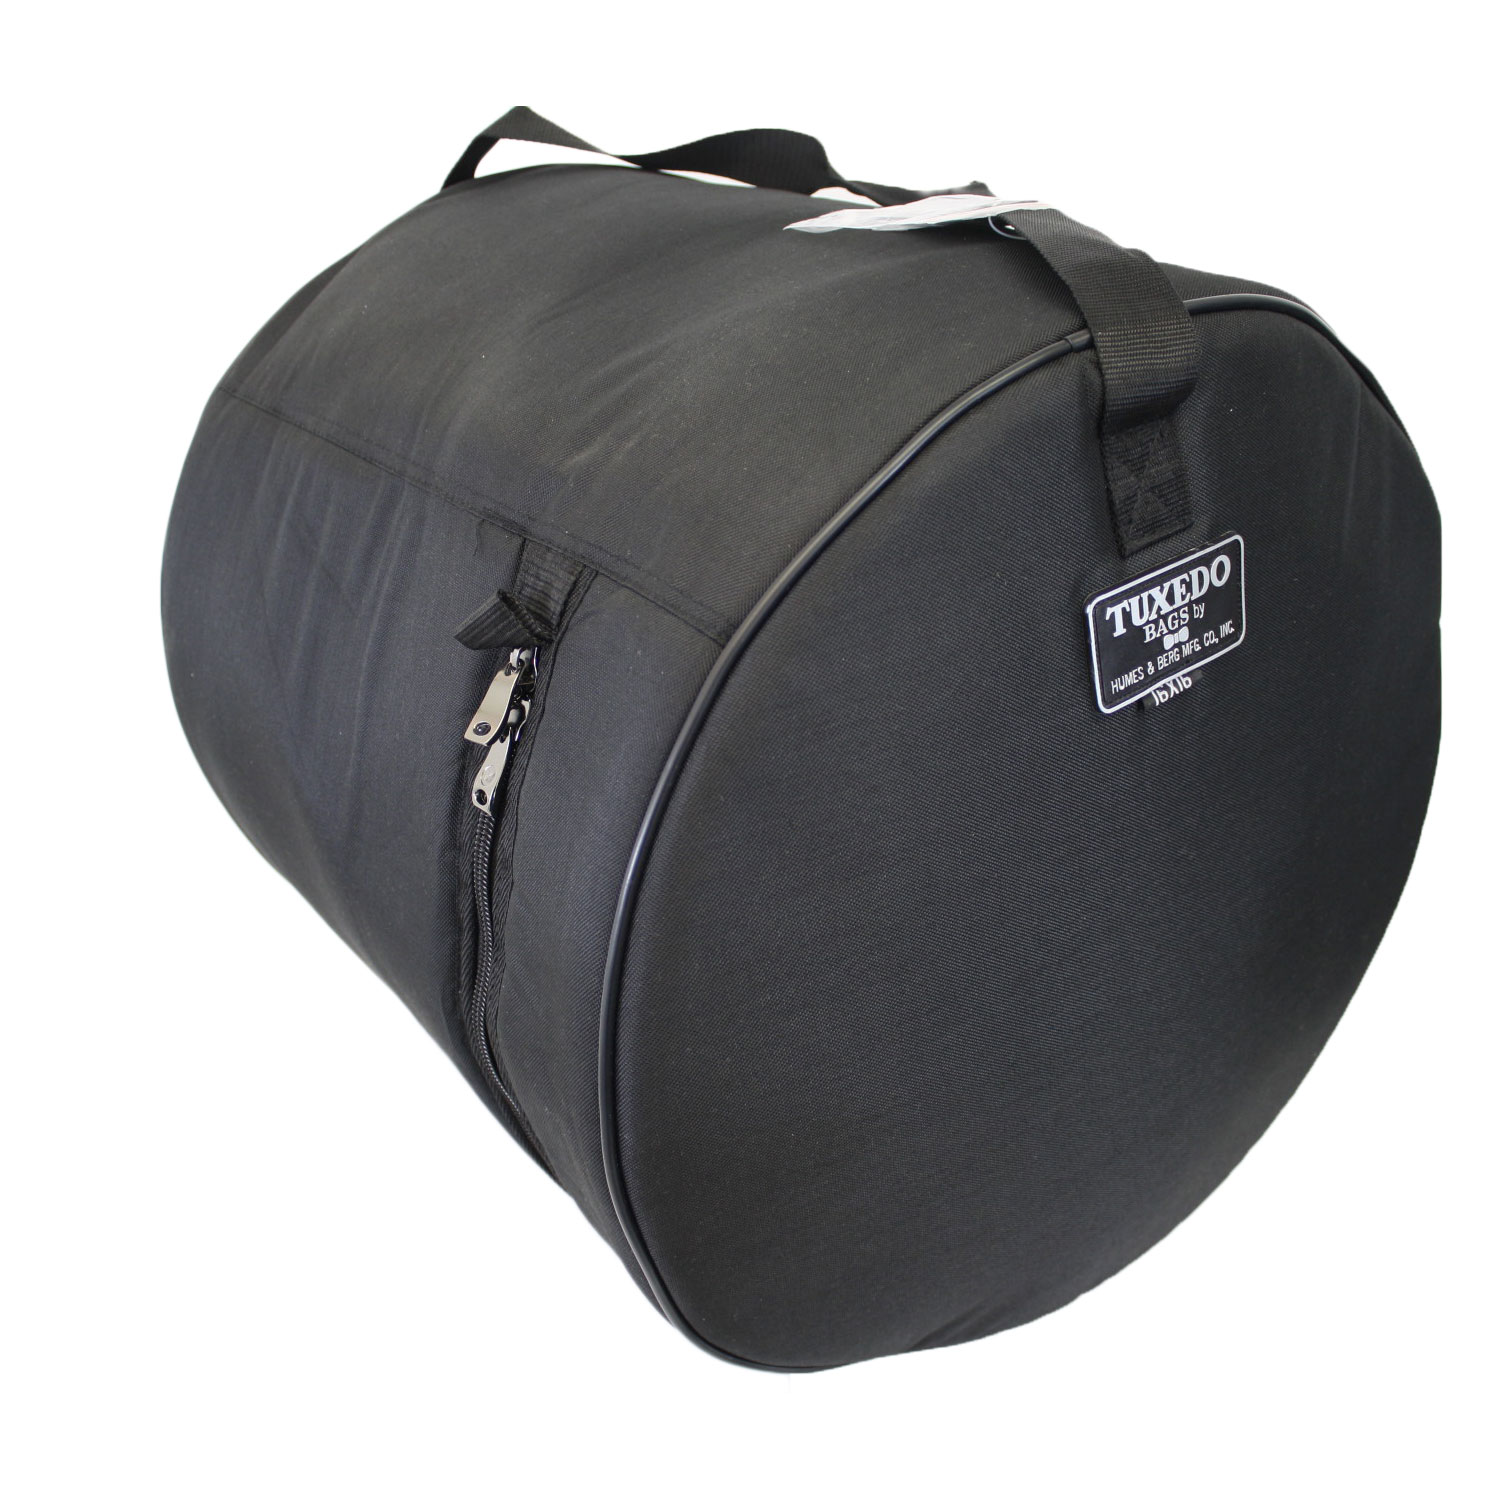 "Humes & Berg 12"" (Deep) x 14"" (Diameter) Tuxedo Tom Bag/Soft Case"